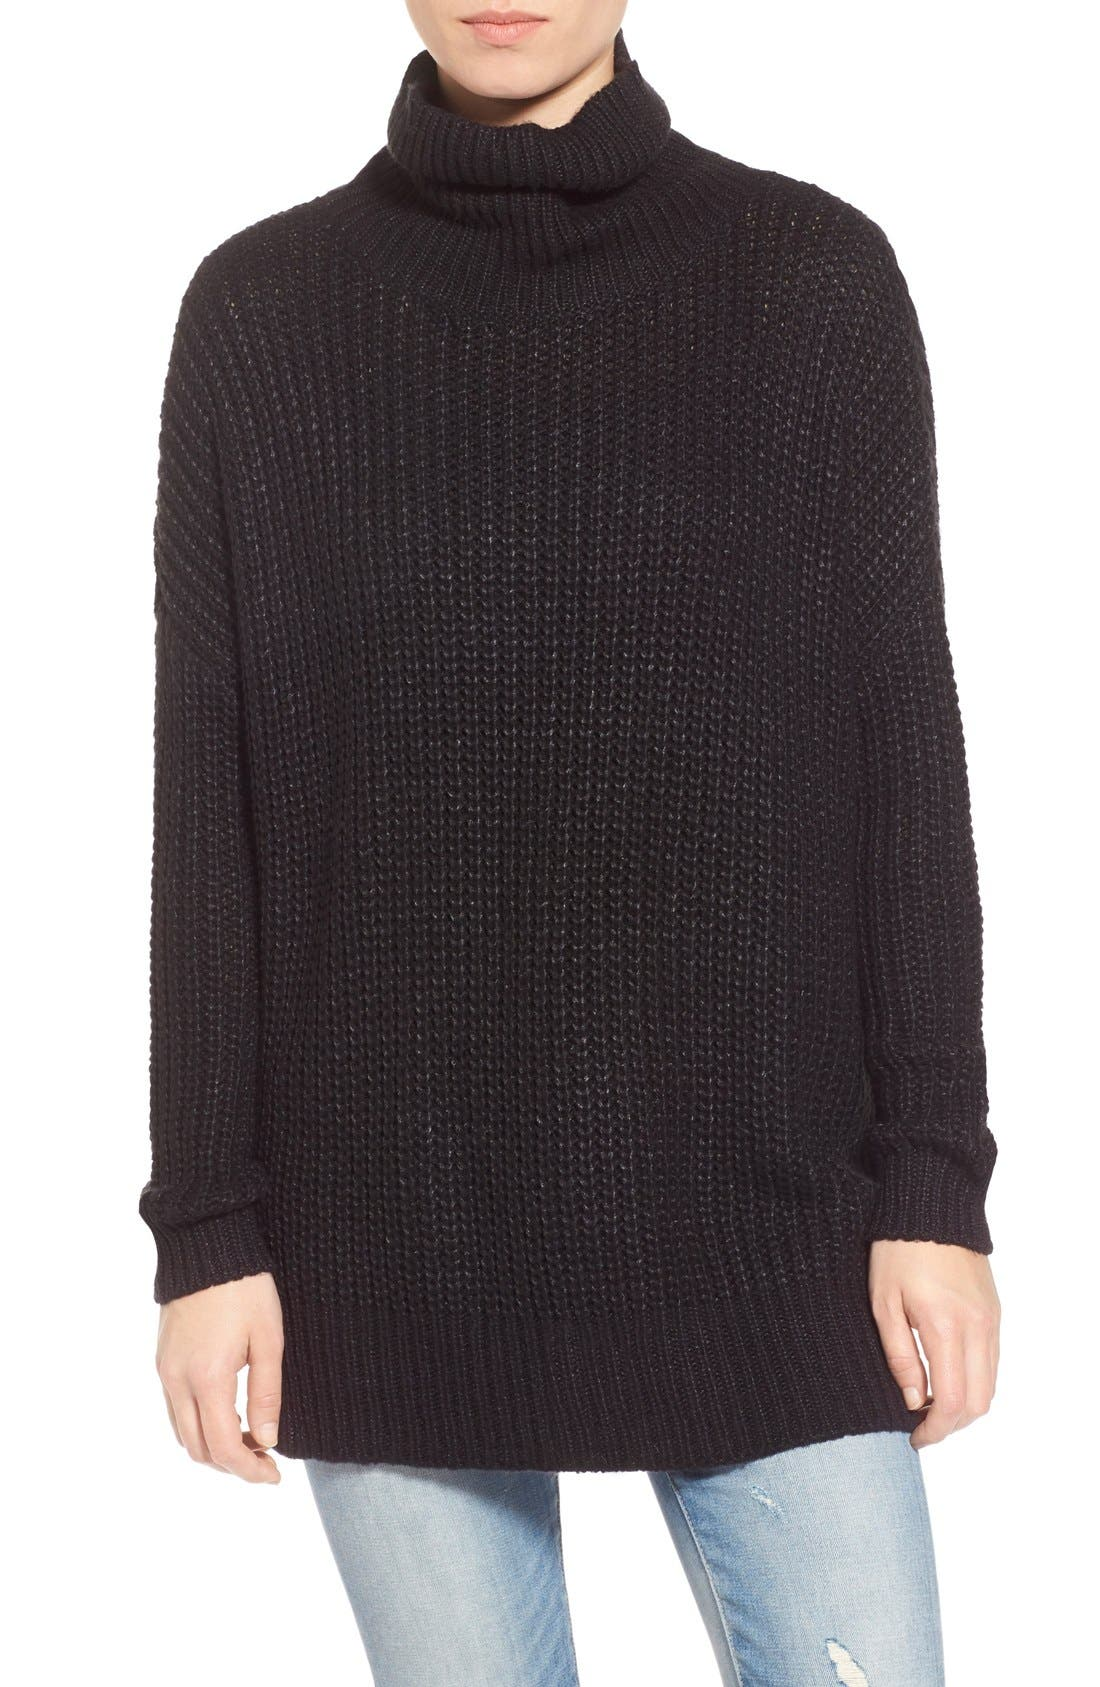 LEITH Oversize Turtleneck Sweater, Main, color, 001